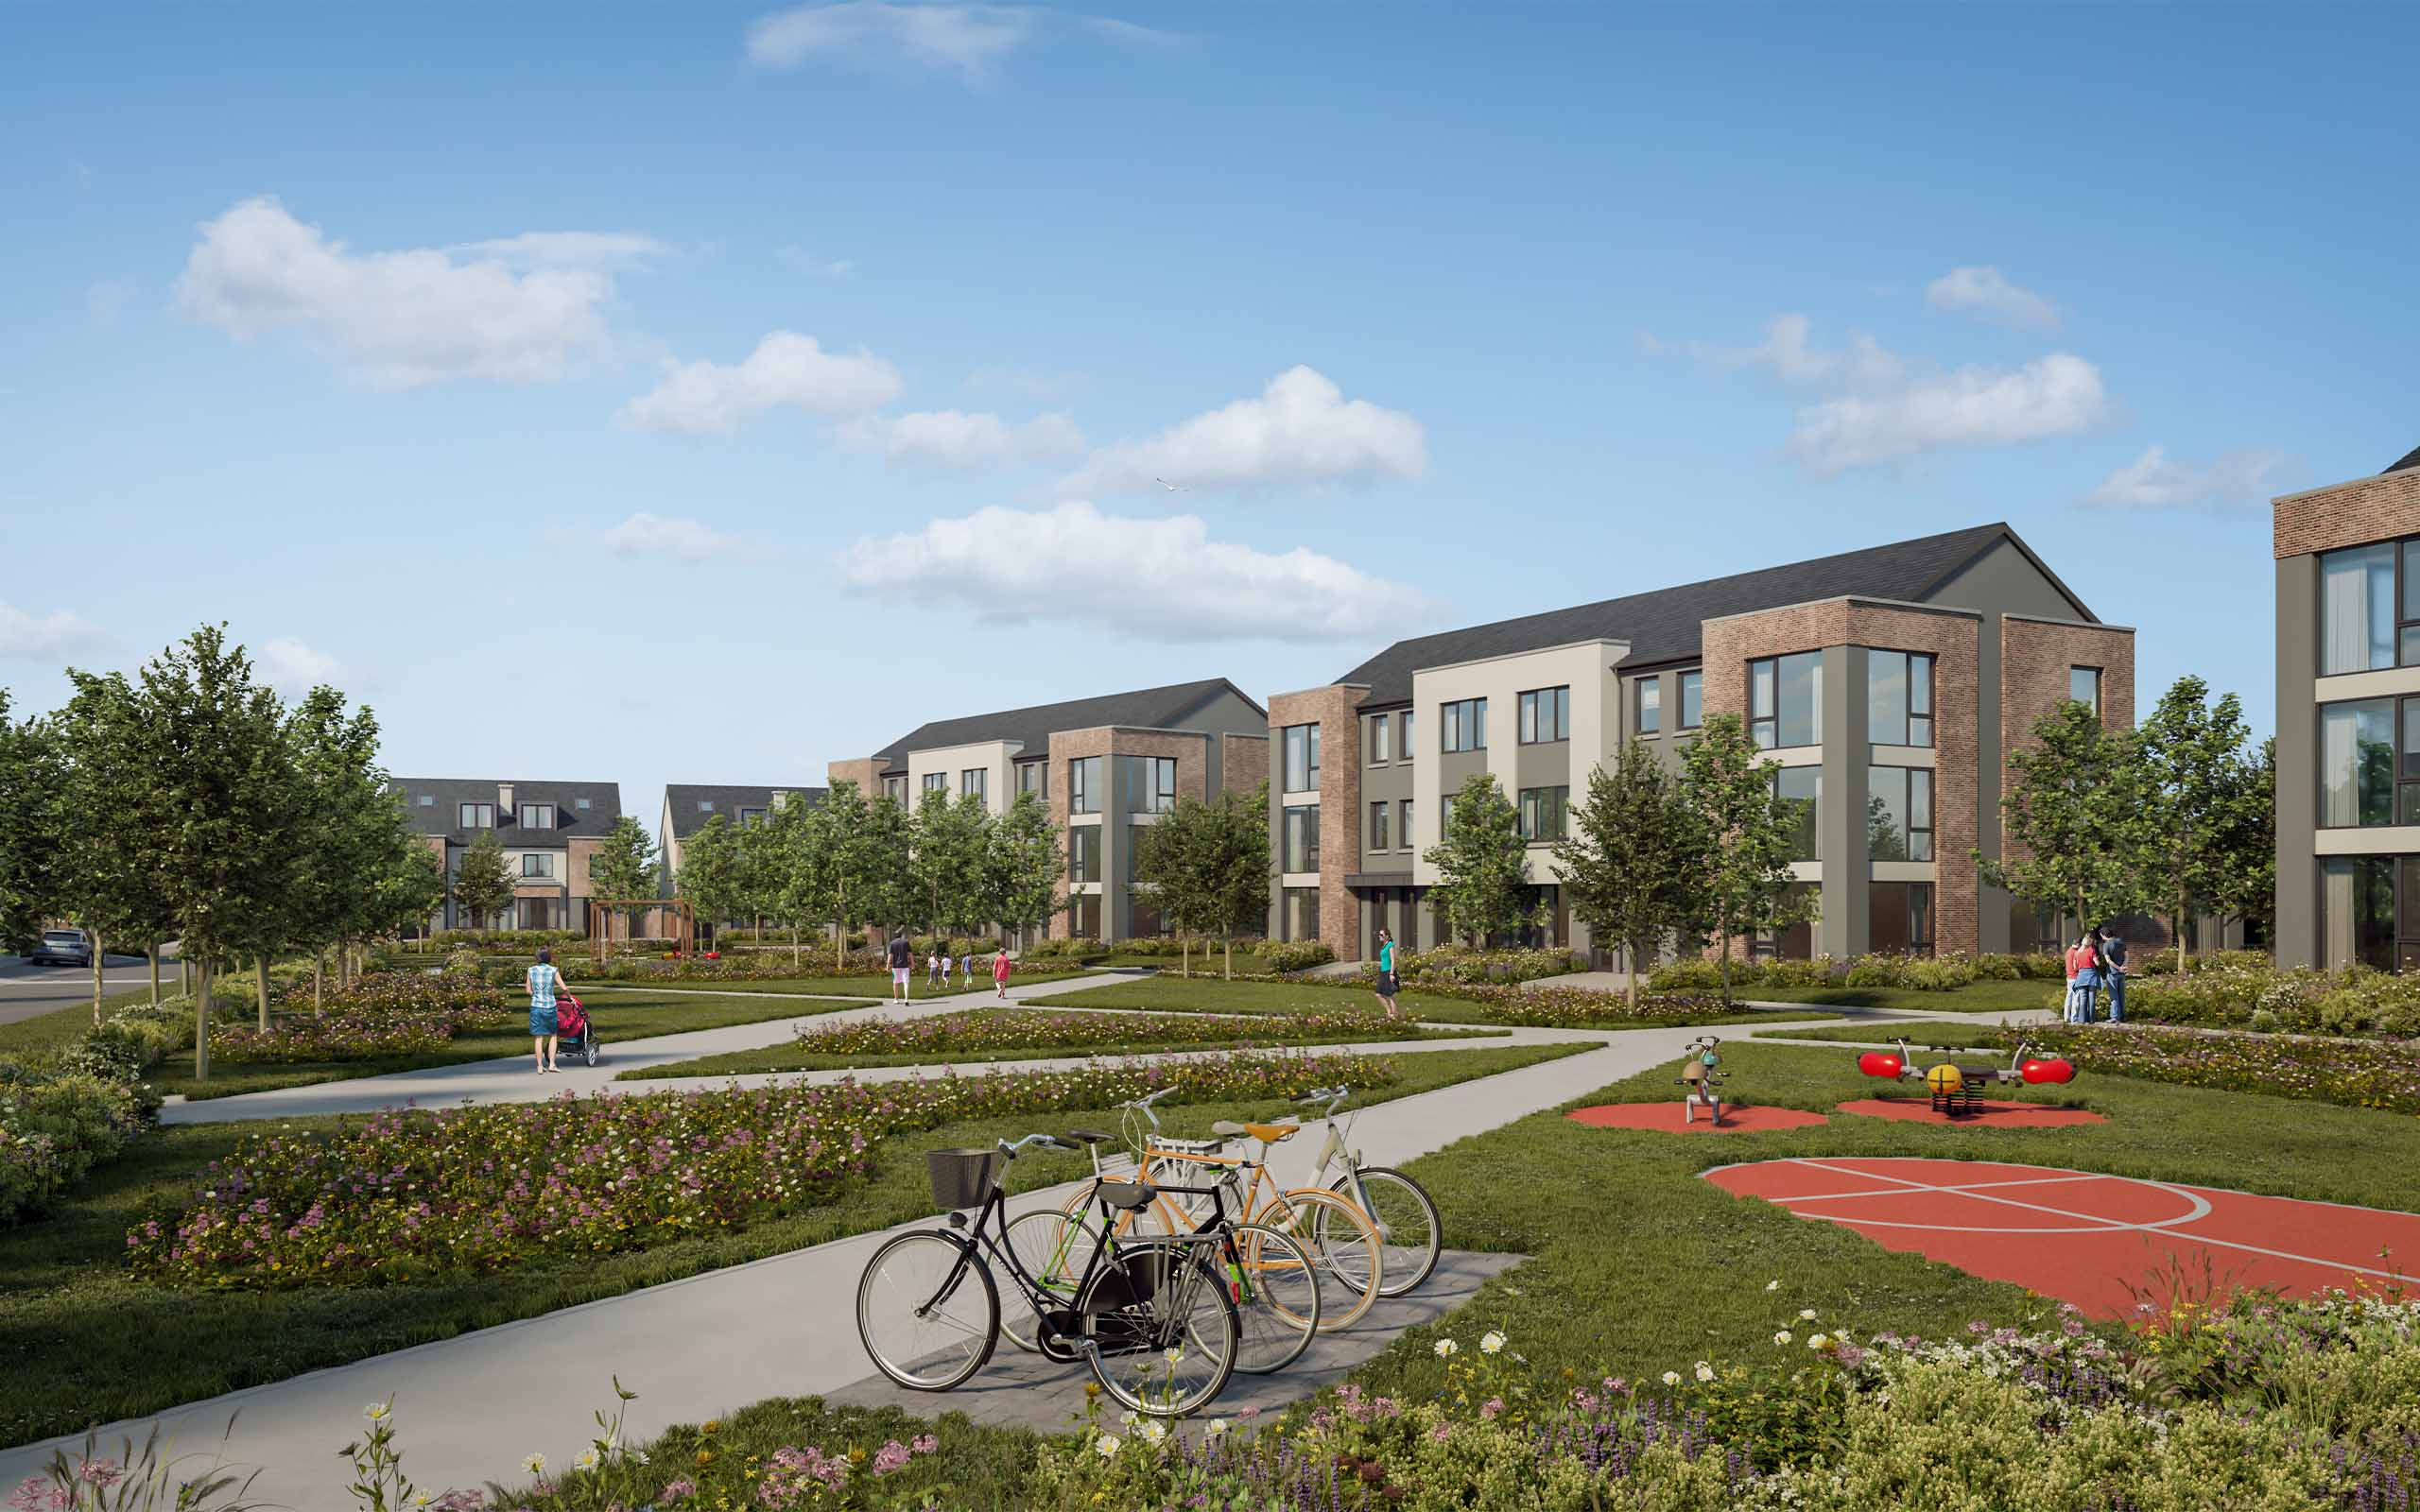 Architectural CGI of proposed Coleville Road SHD in Clonmel, Co. Tipperary.